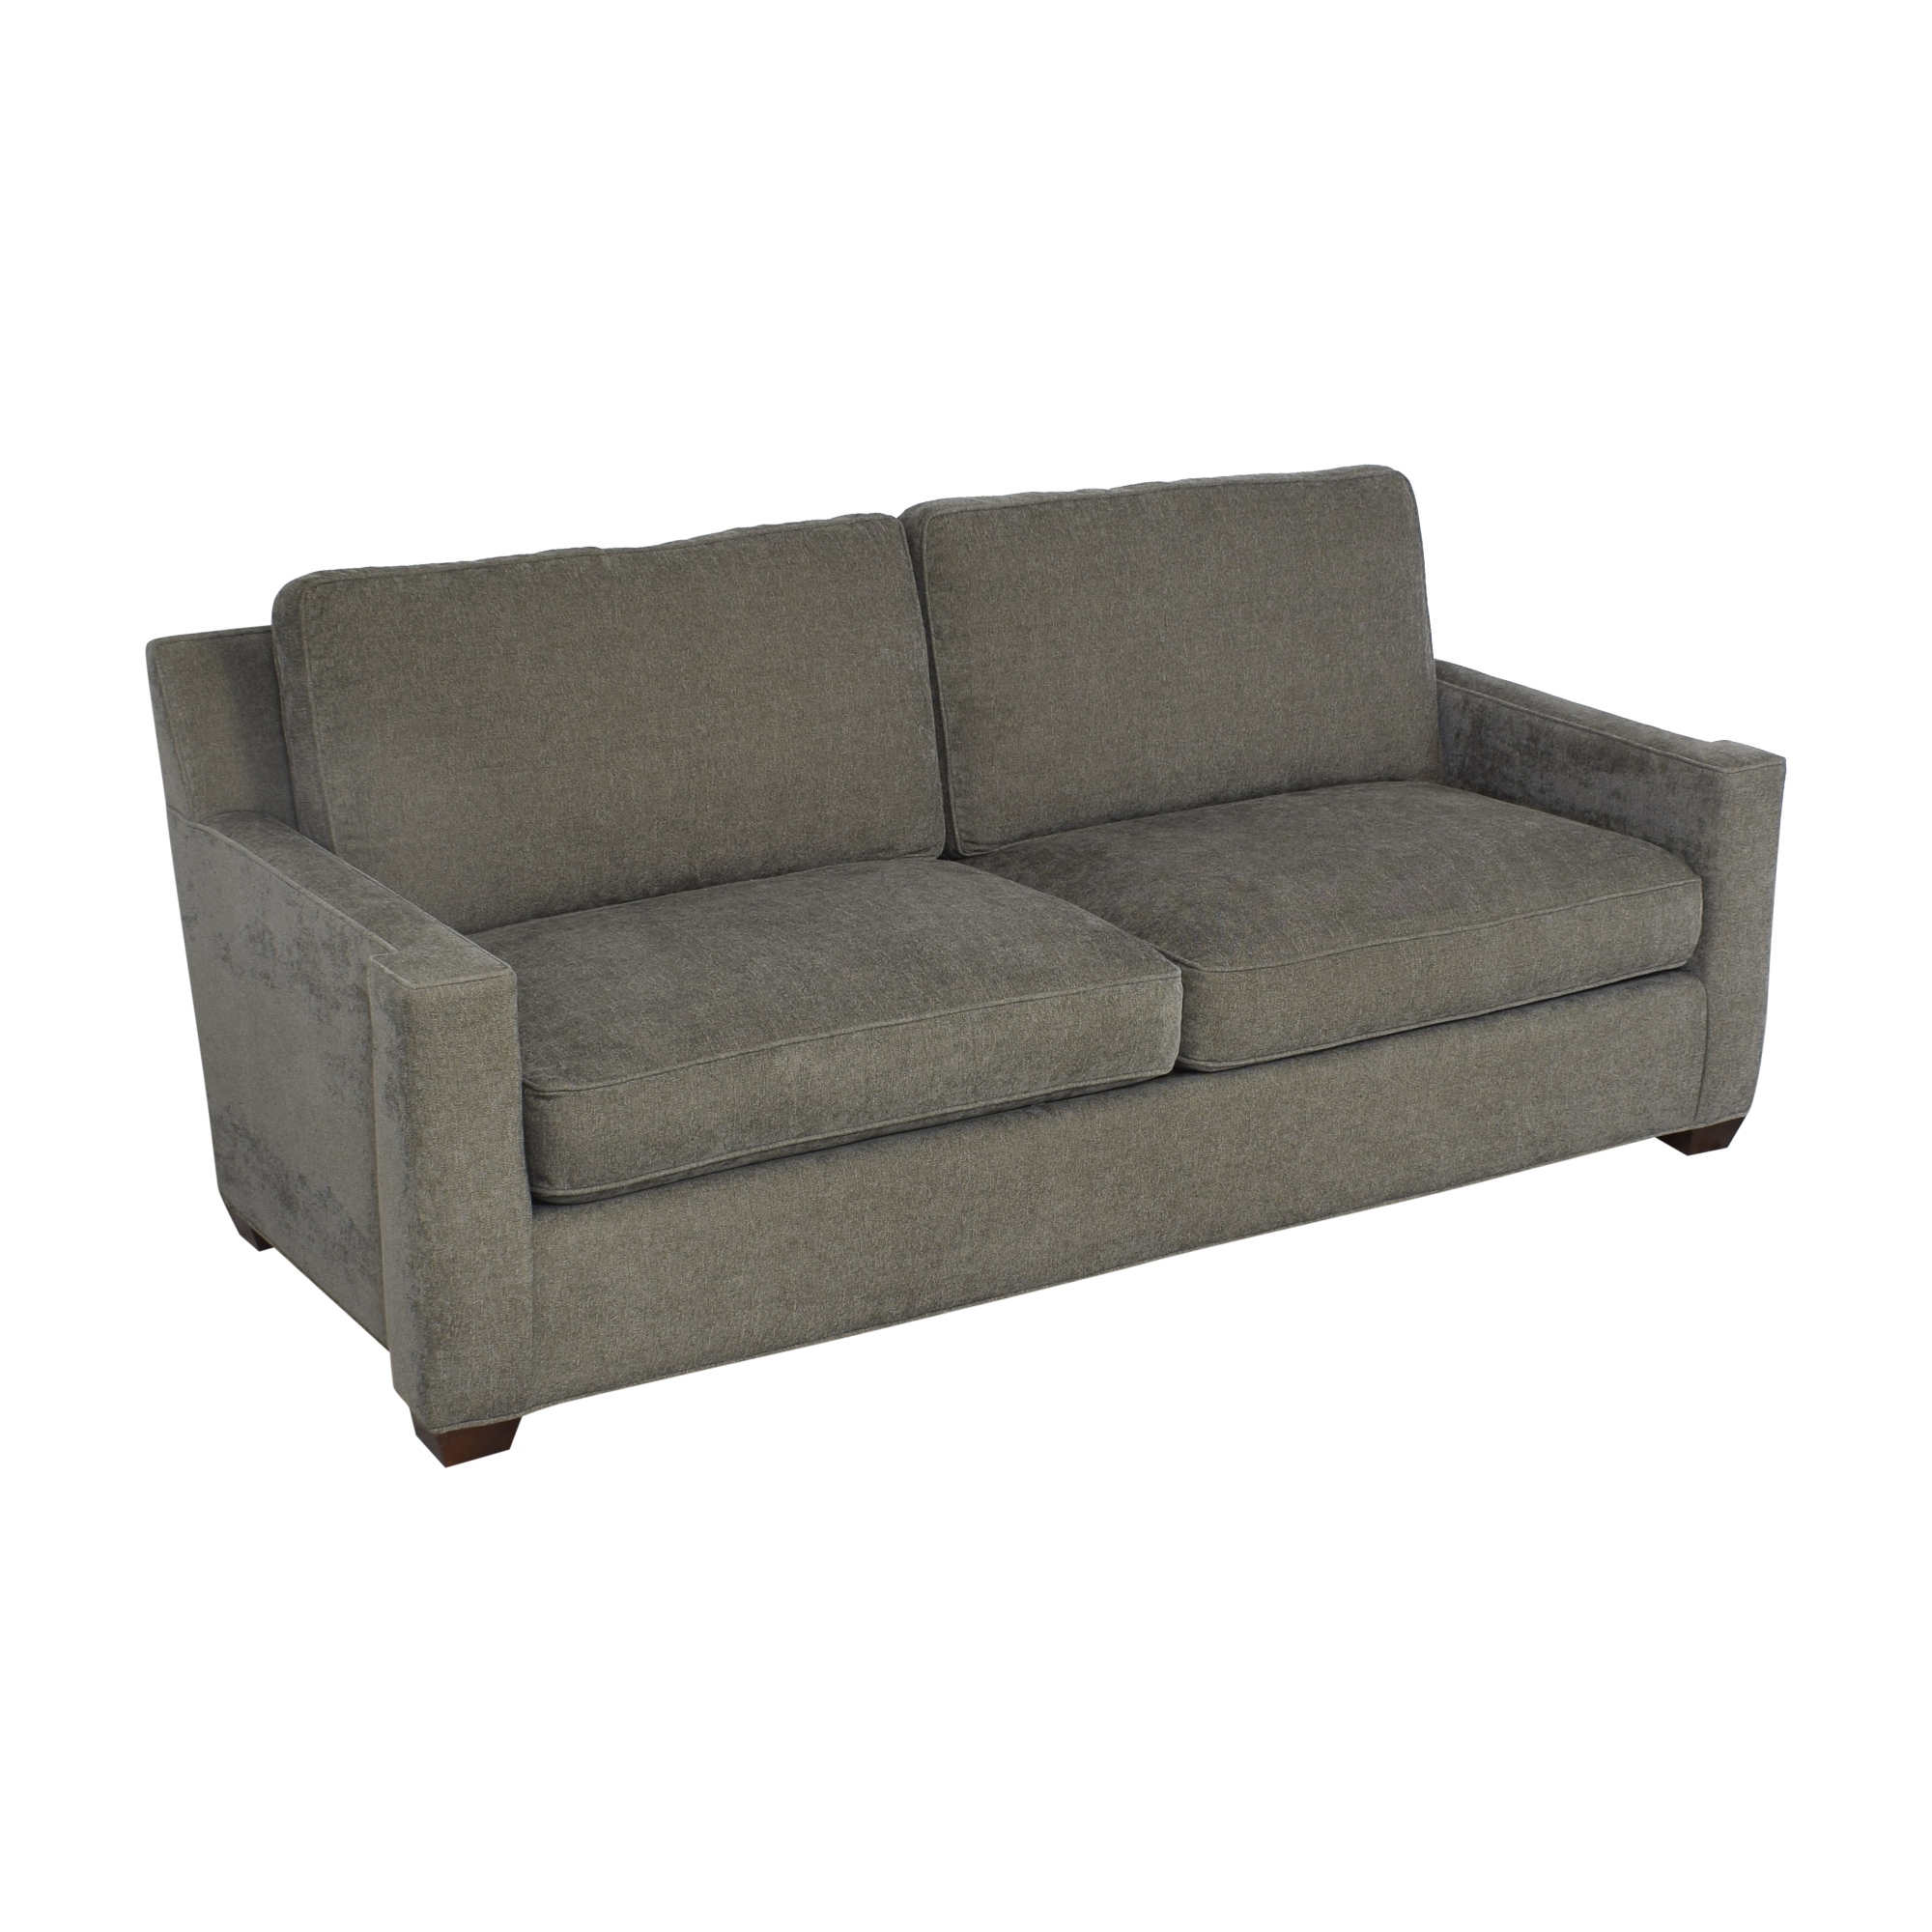 Century Furniture Century Furniture Colton Sofa used